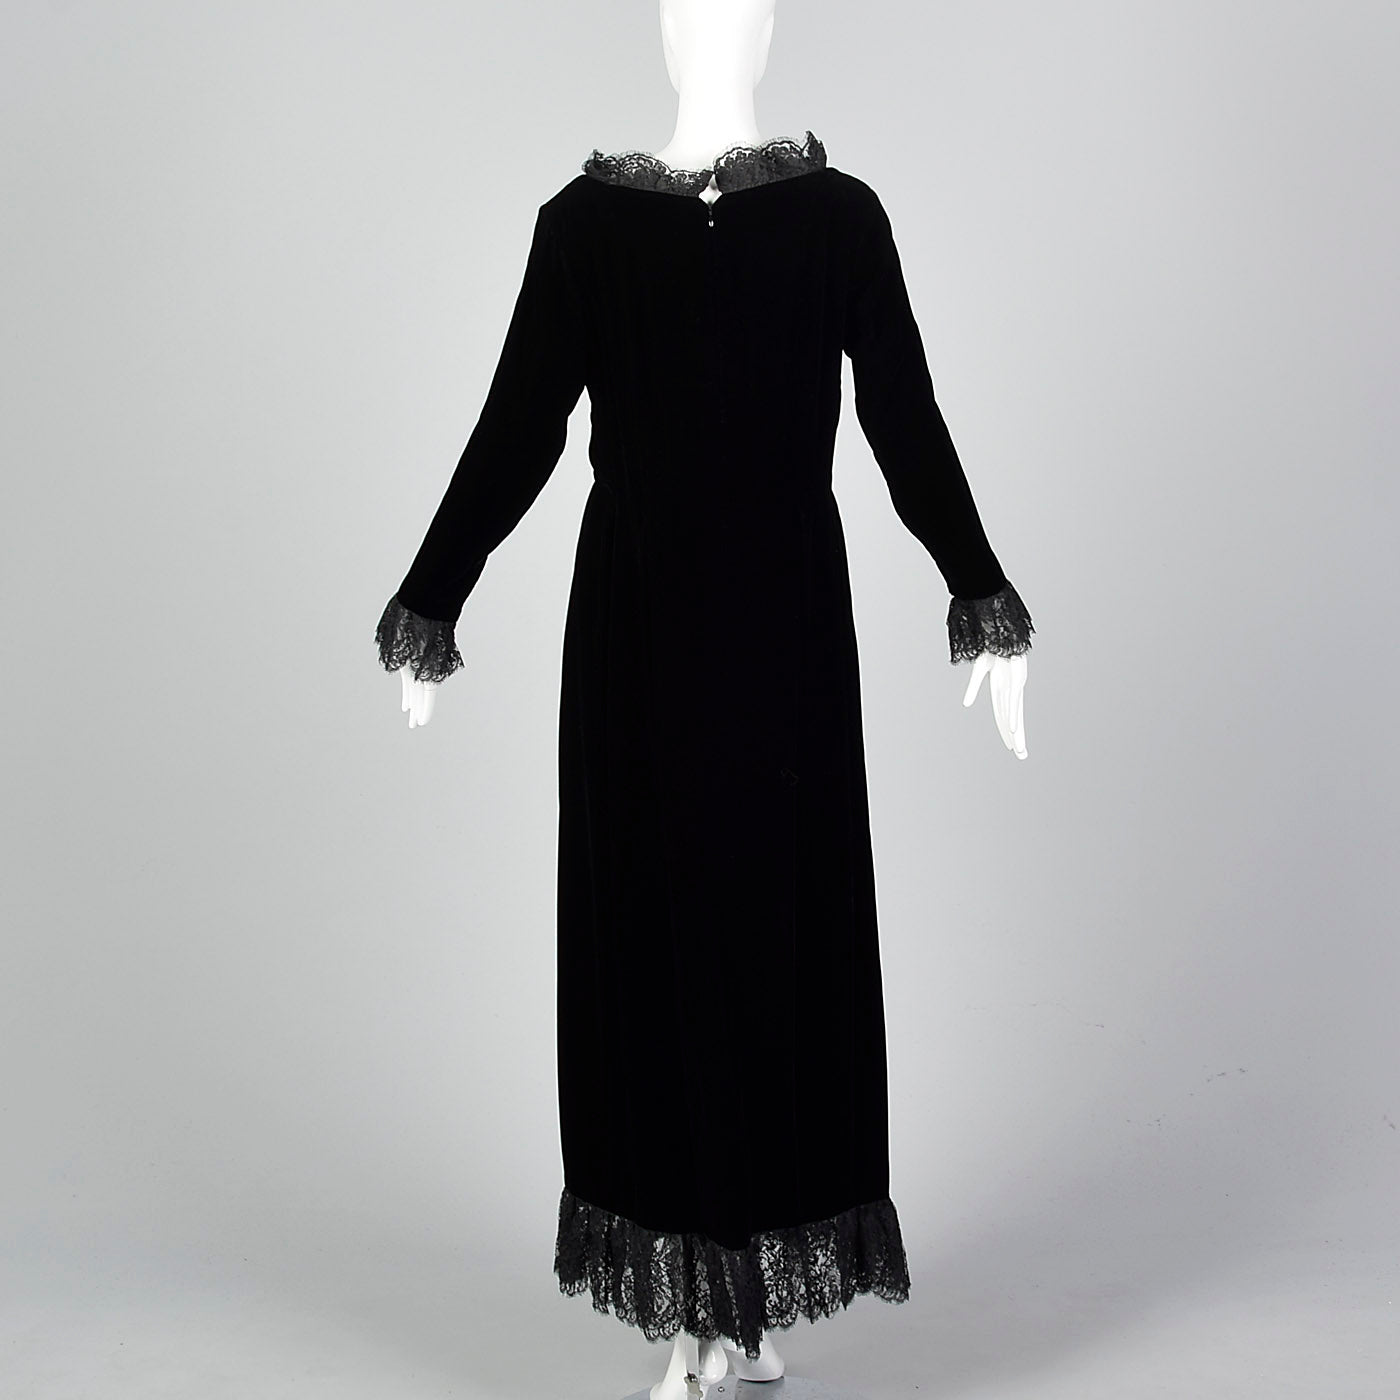 1970s Richilene Black Velvet Evening Dress with Lace Trim